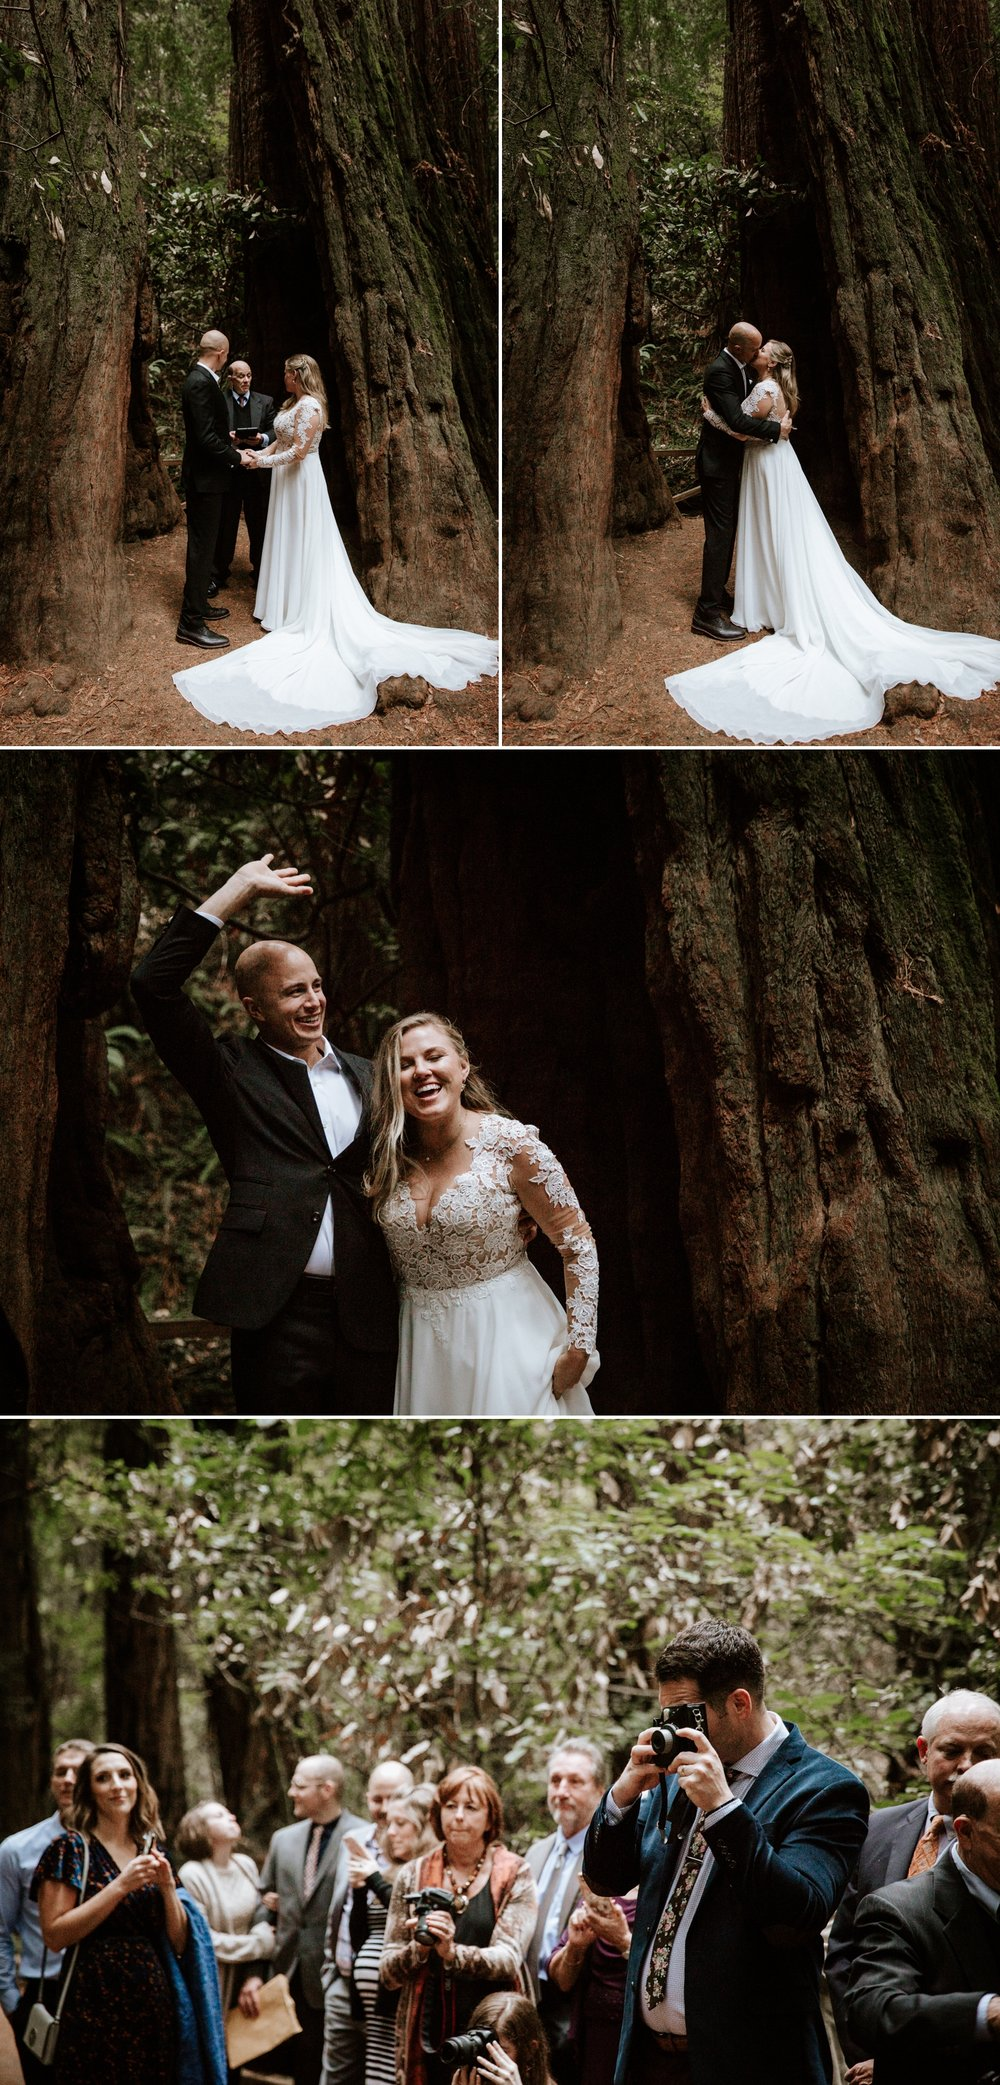 hannah-nick-intimate-muir-woods-wedding-21.jpg